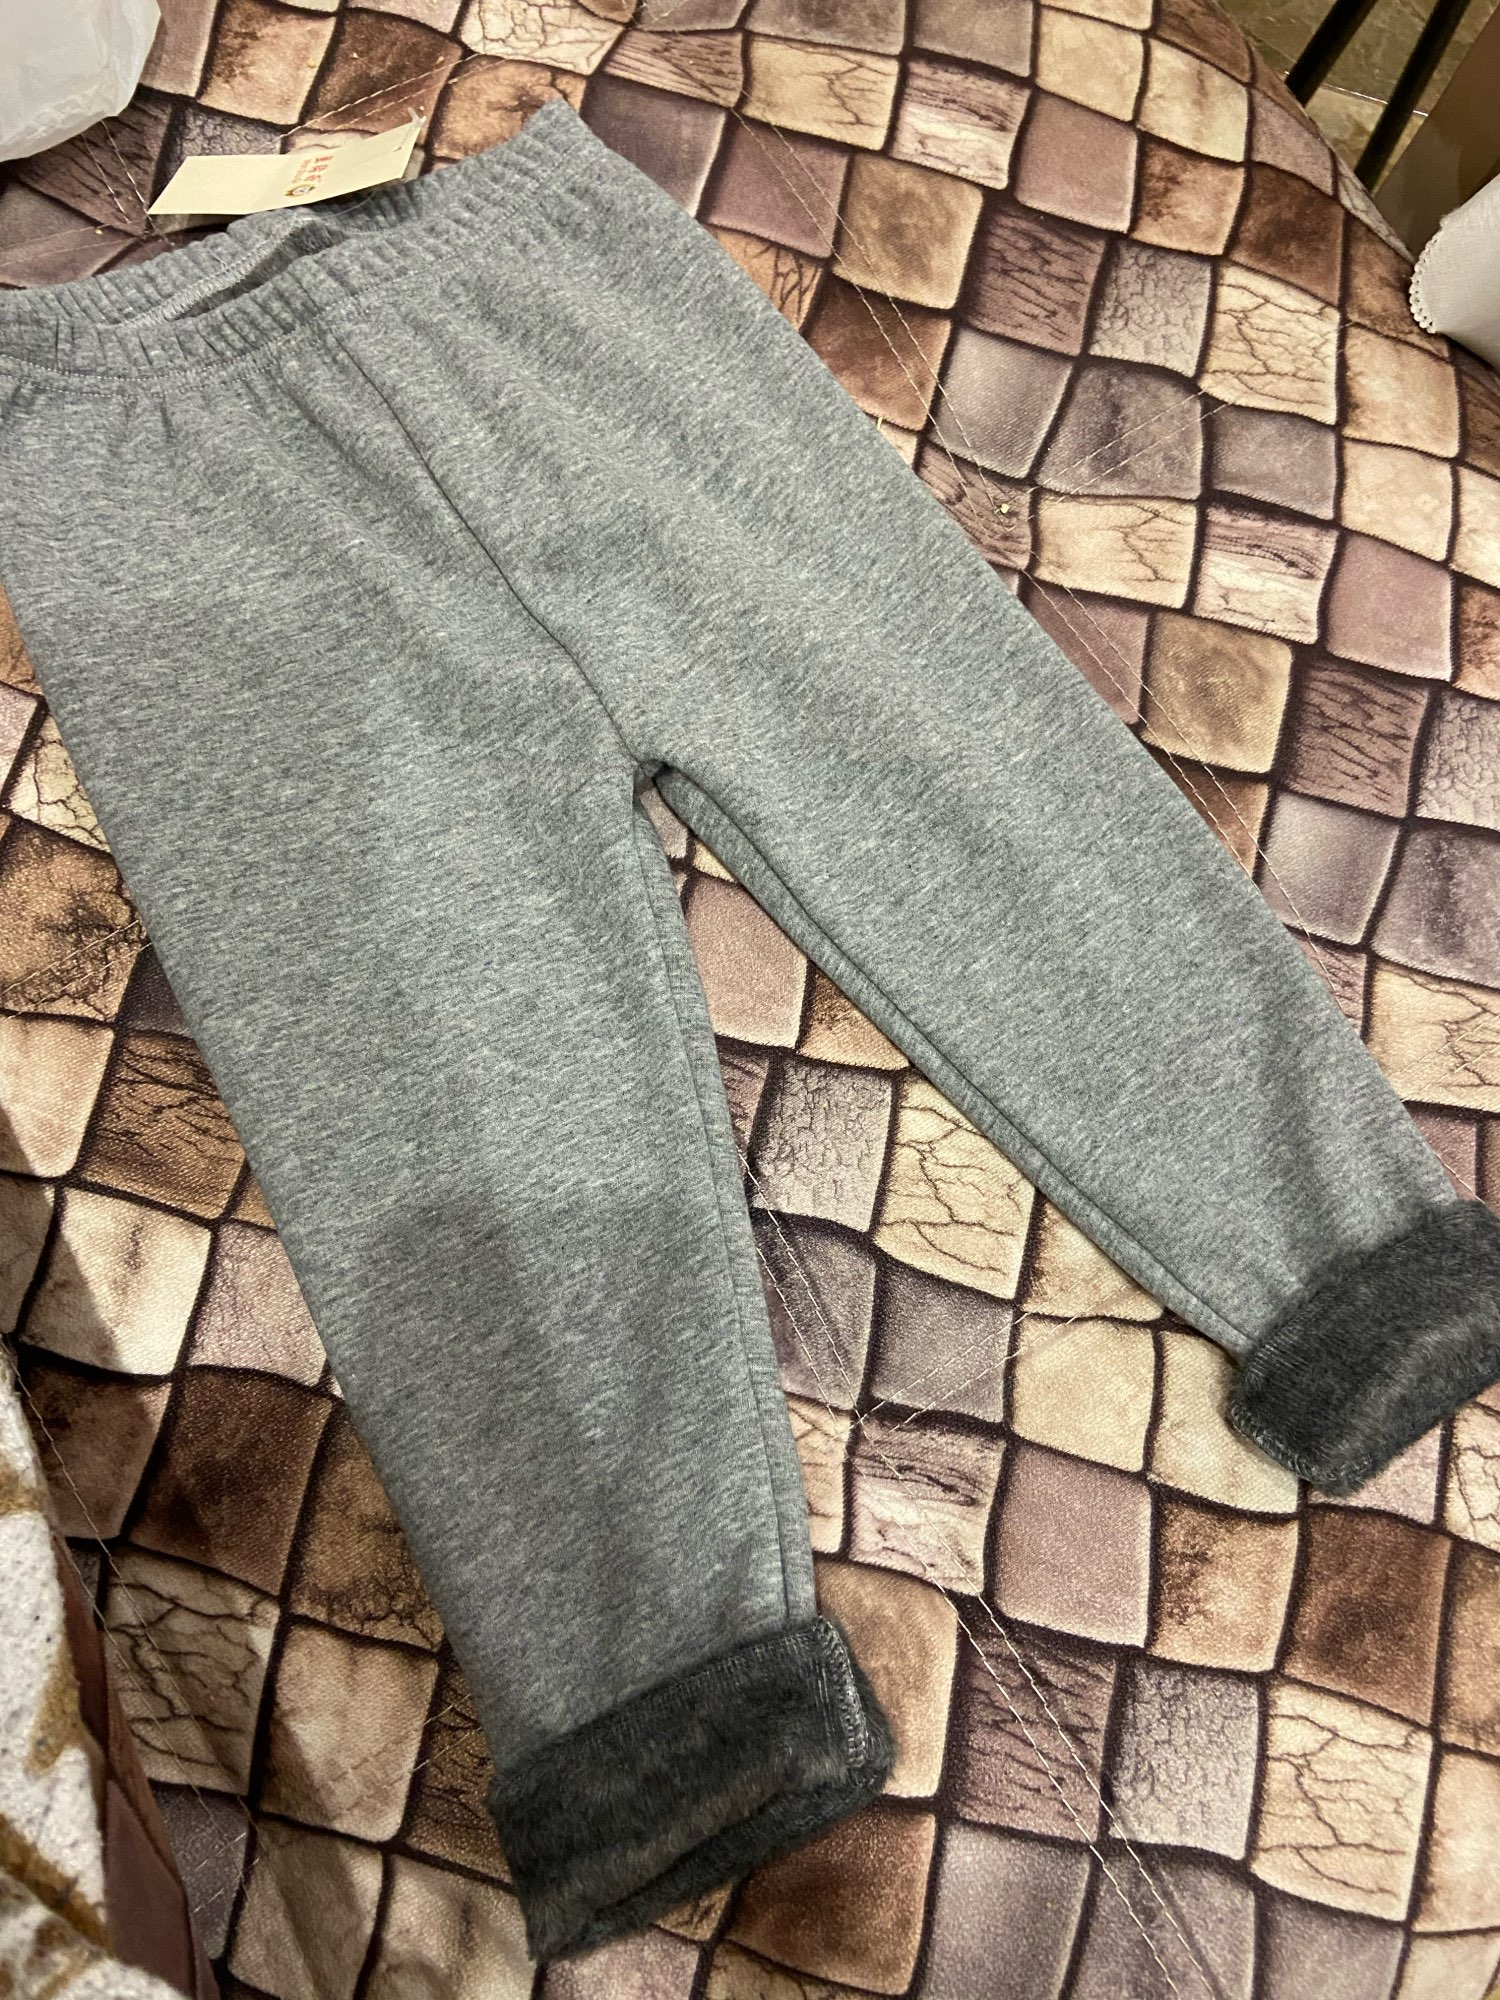 2019 Winter New Girls Leggings Cotton Plus Thick Velvet Warm Candy Color Girls Pants 2-8 Years Children's Pants photo review